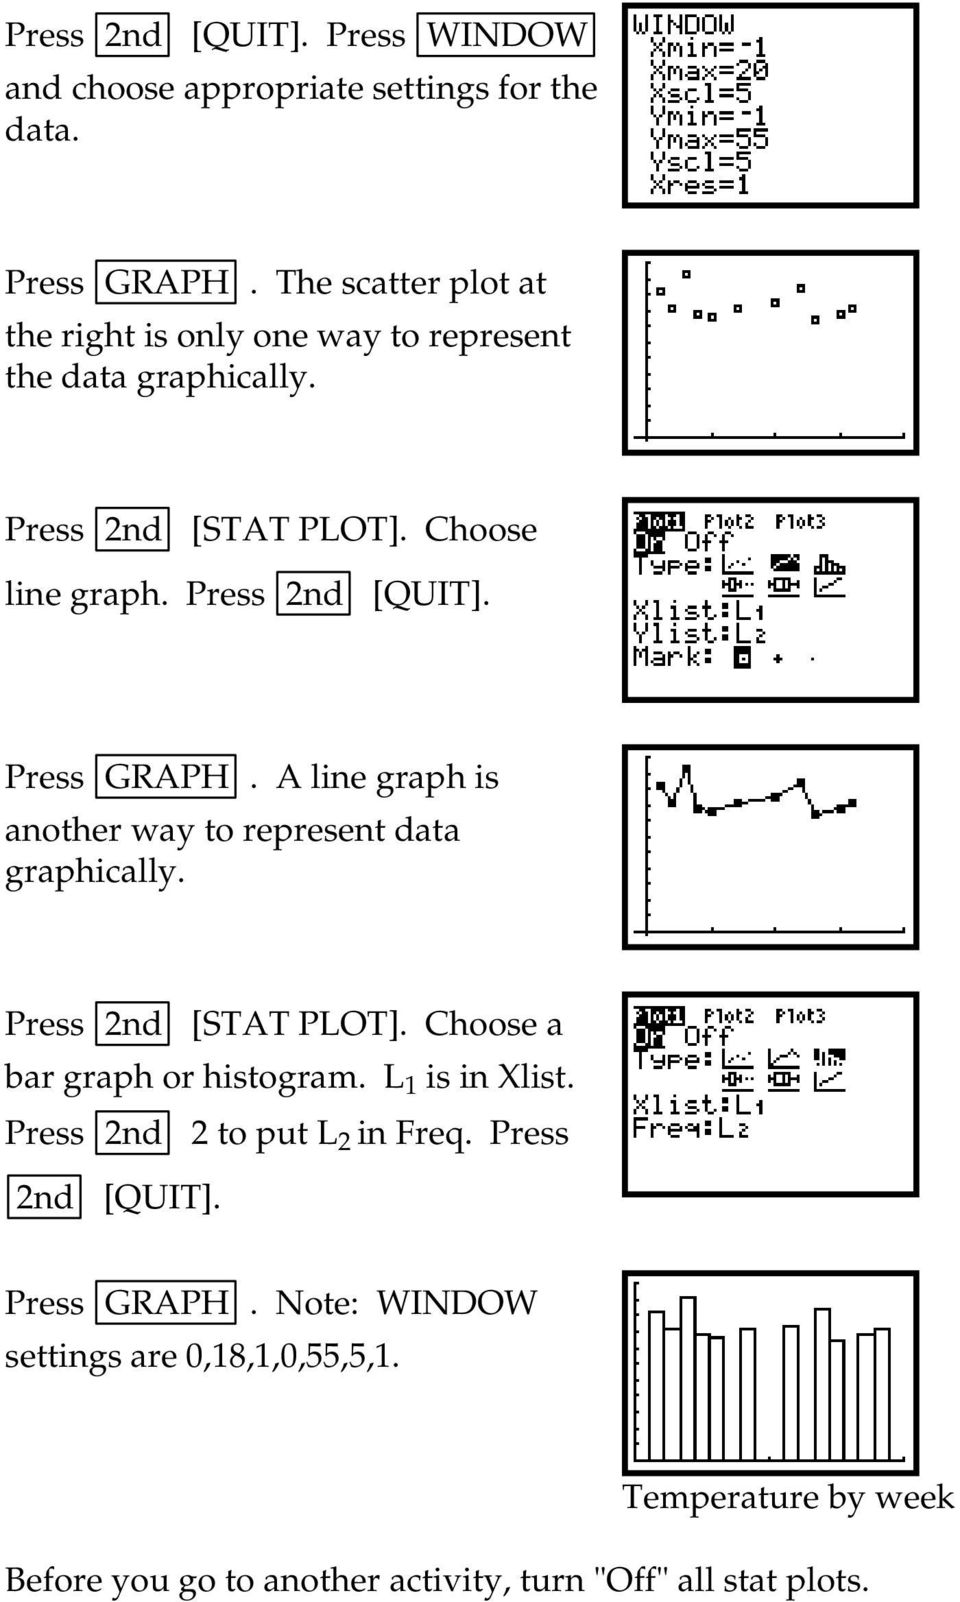 Press 2nd [QUIT]. A line graph is another way to represent data graphically. Press 2nd [STAT PLOT].